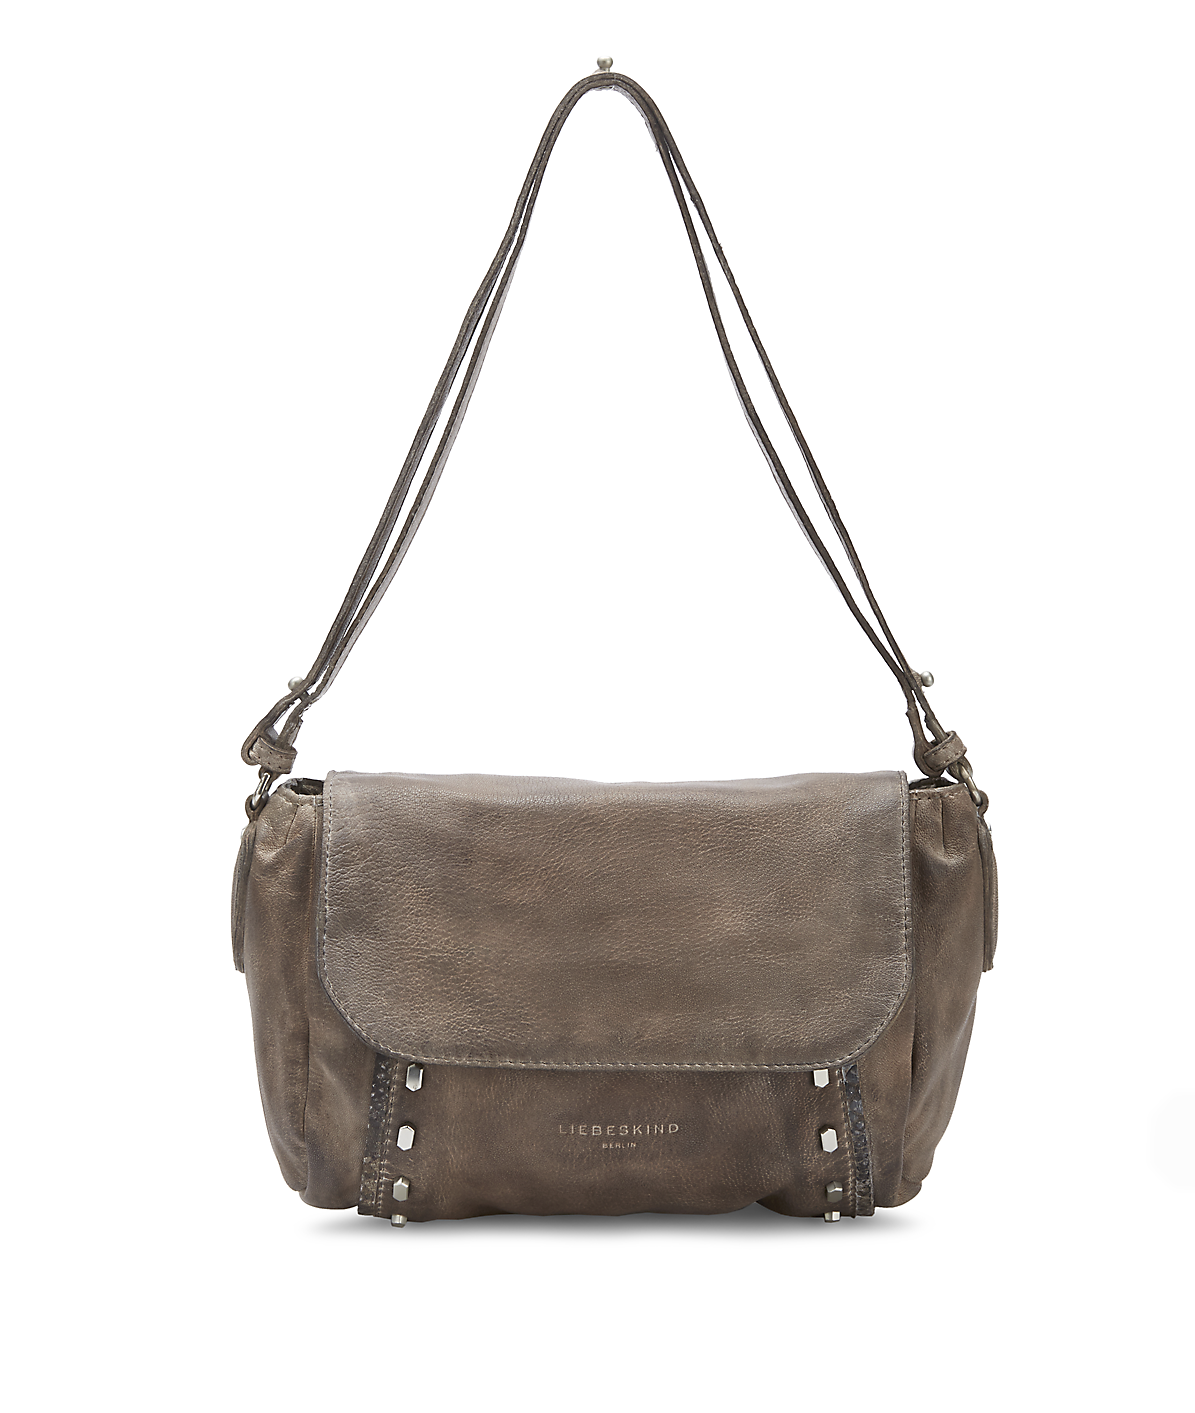 Fukui shoulder bag from liebeskind